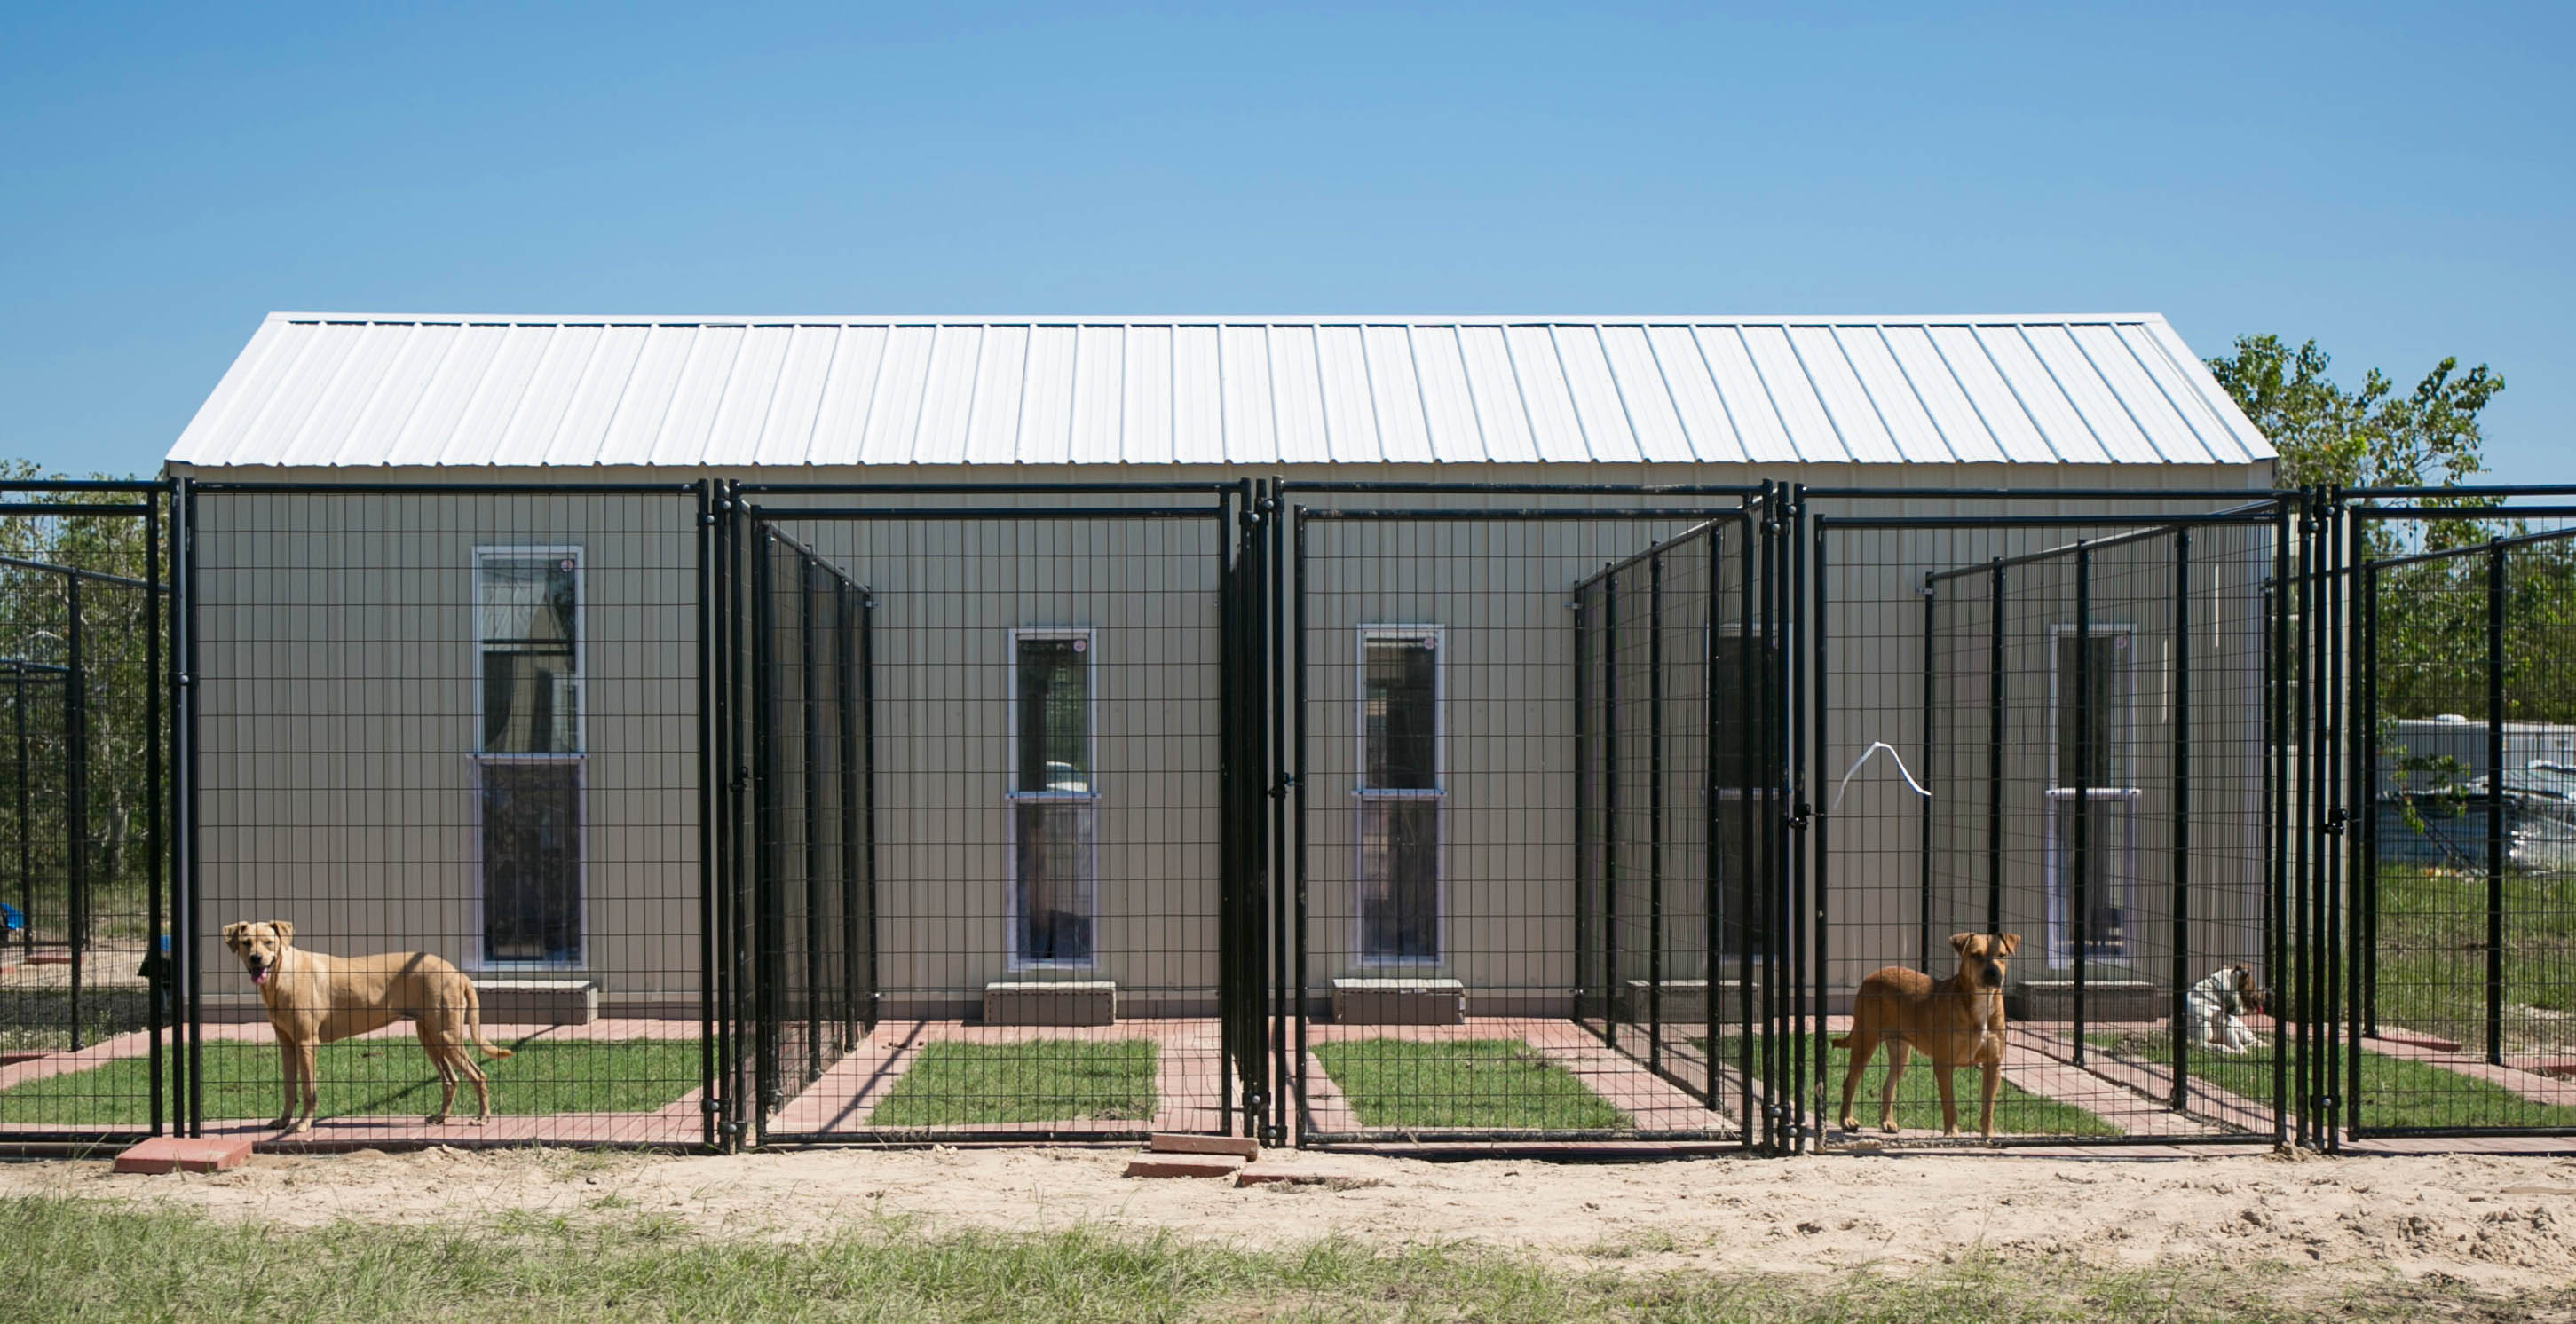 Katy Dog Suites: Luxury dog boarding kennels with private grassed backyards